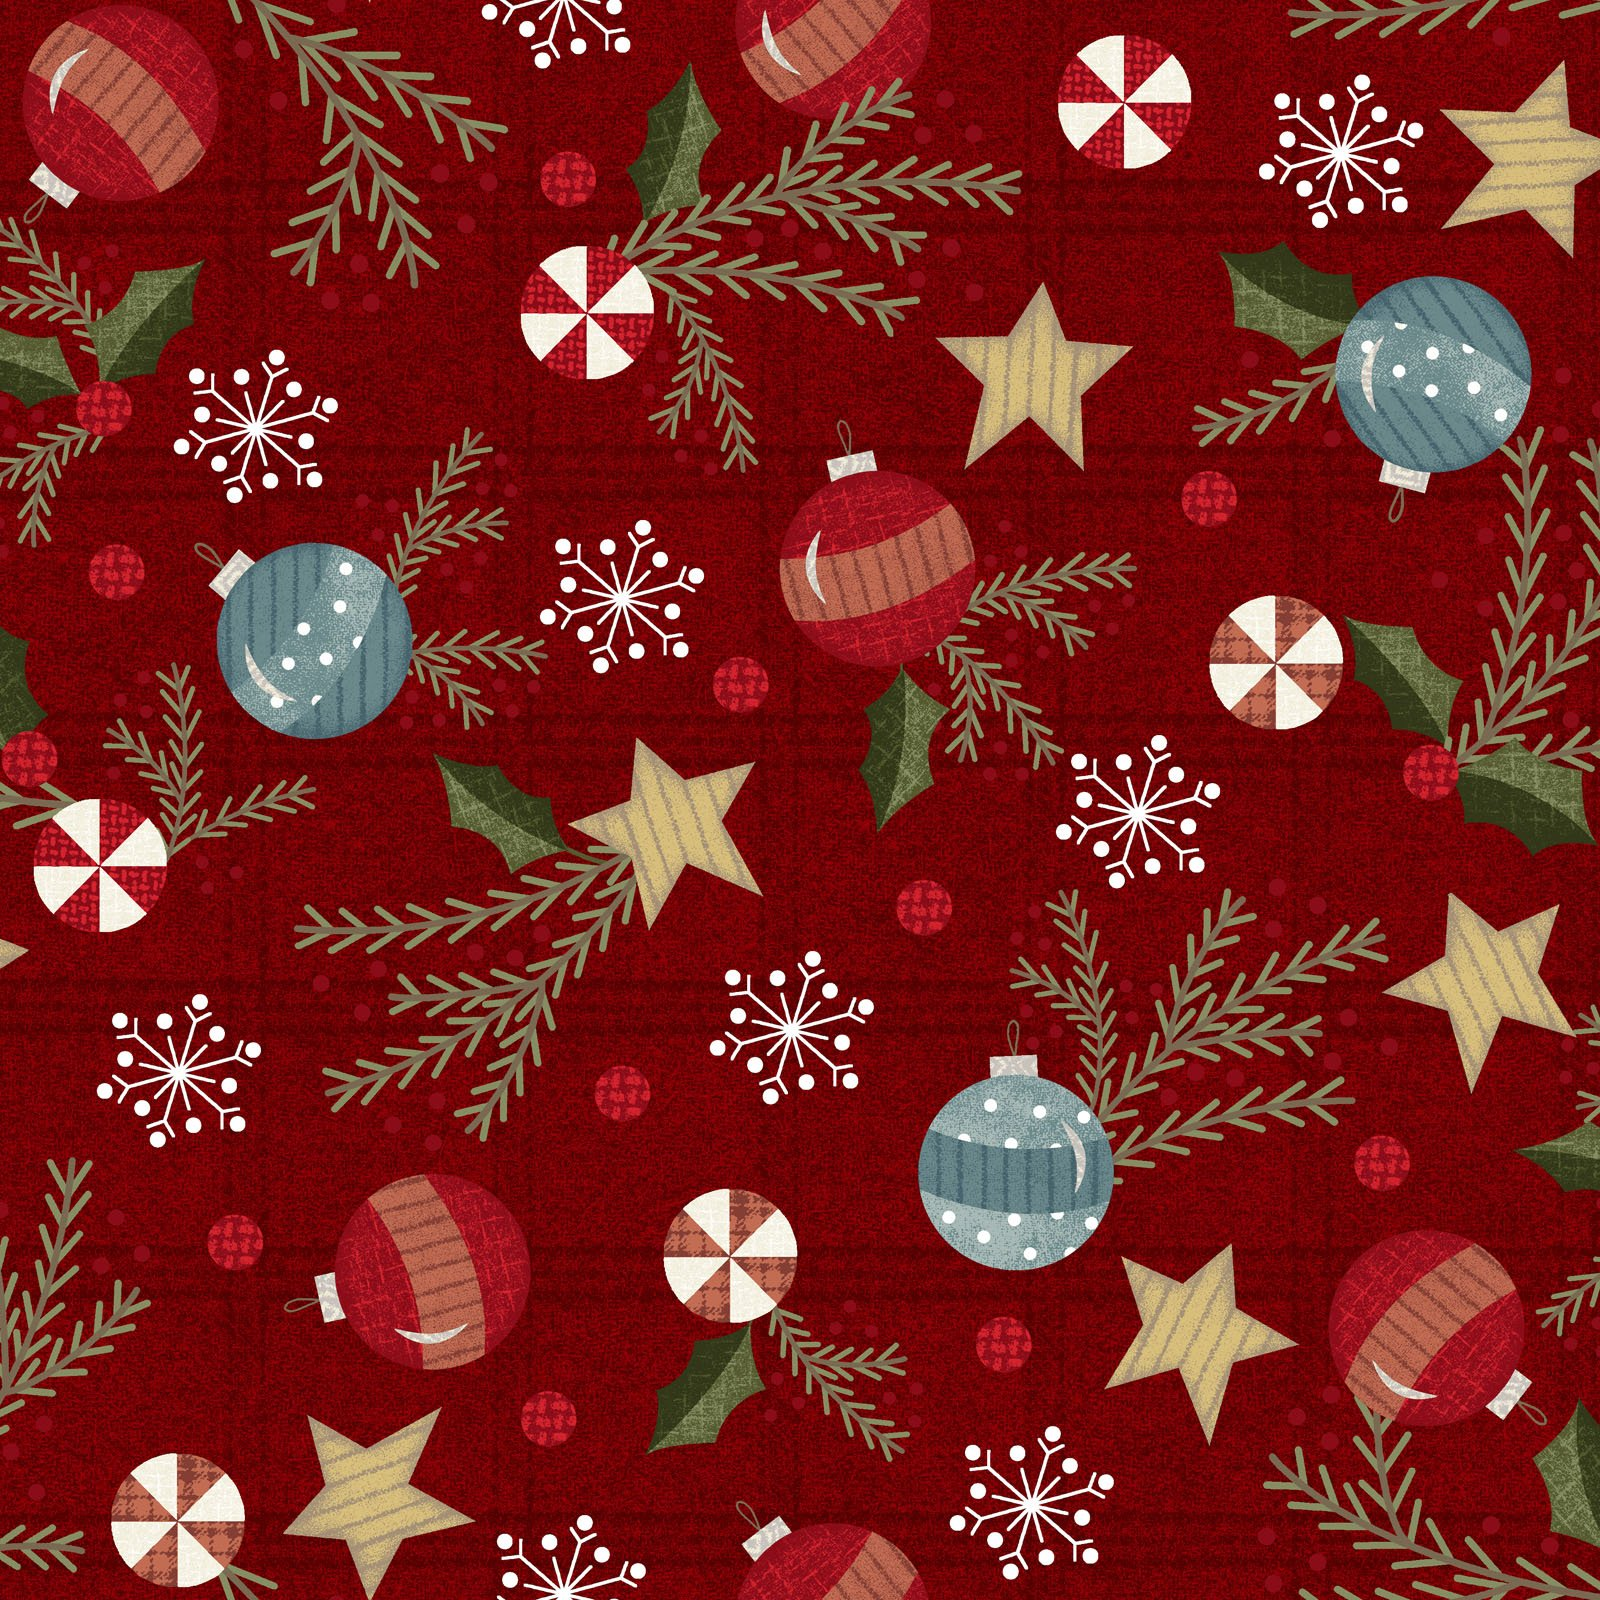 EESC-F9934 R - SNOWDAYS FLANNEL BY BONNIE SULLIVAN TRIMMINGS RED - ARRIVING IN AUGUST 2021